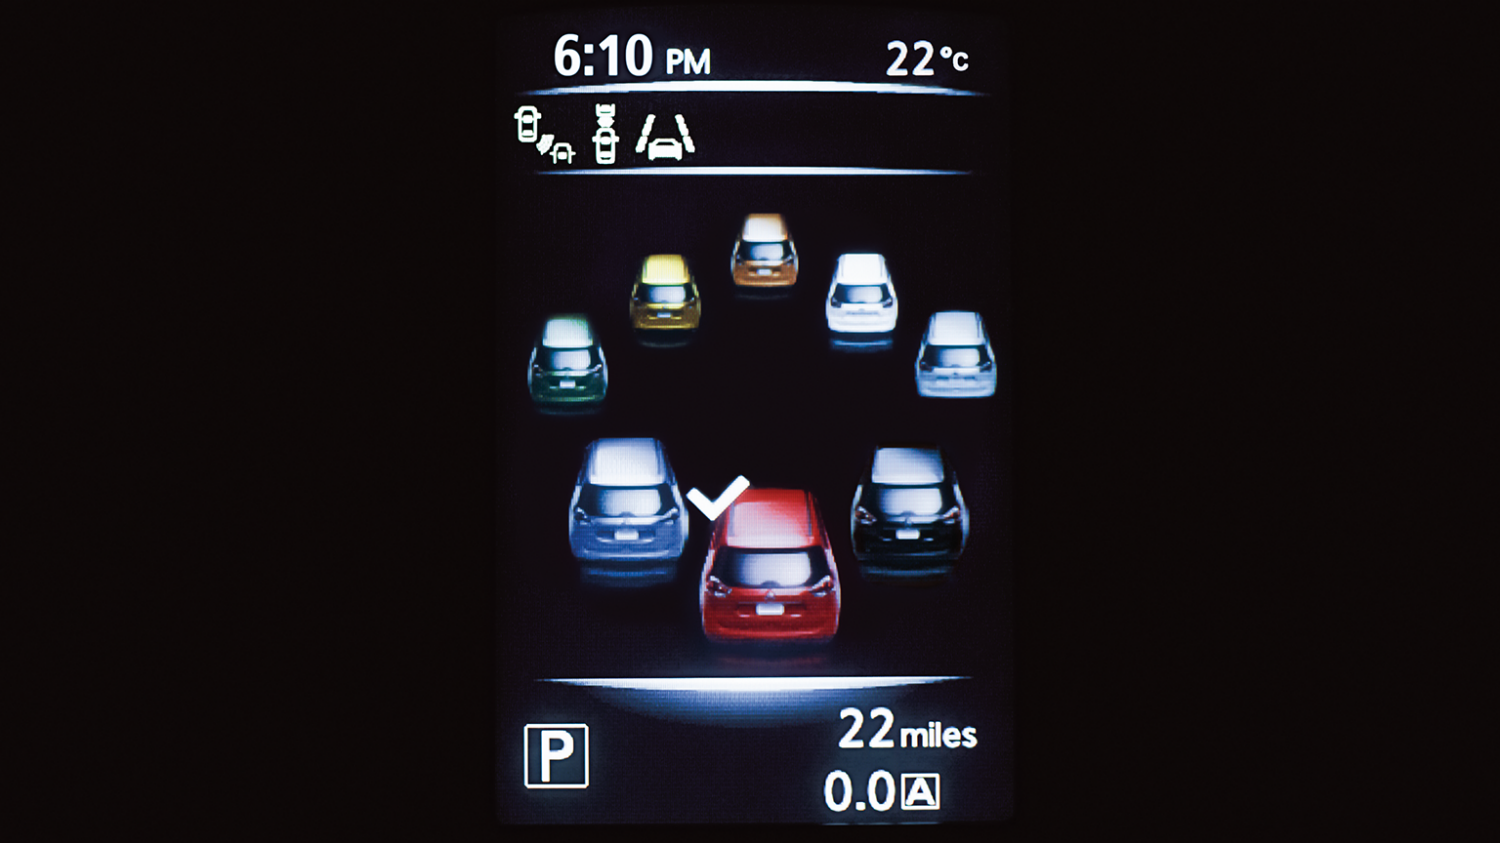 Nissan X-Trail | Drive Assist display